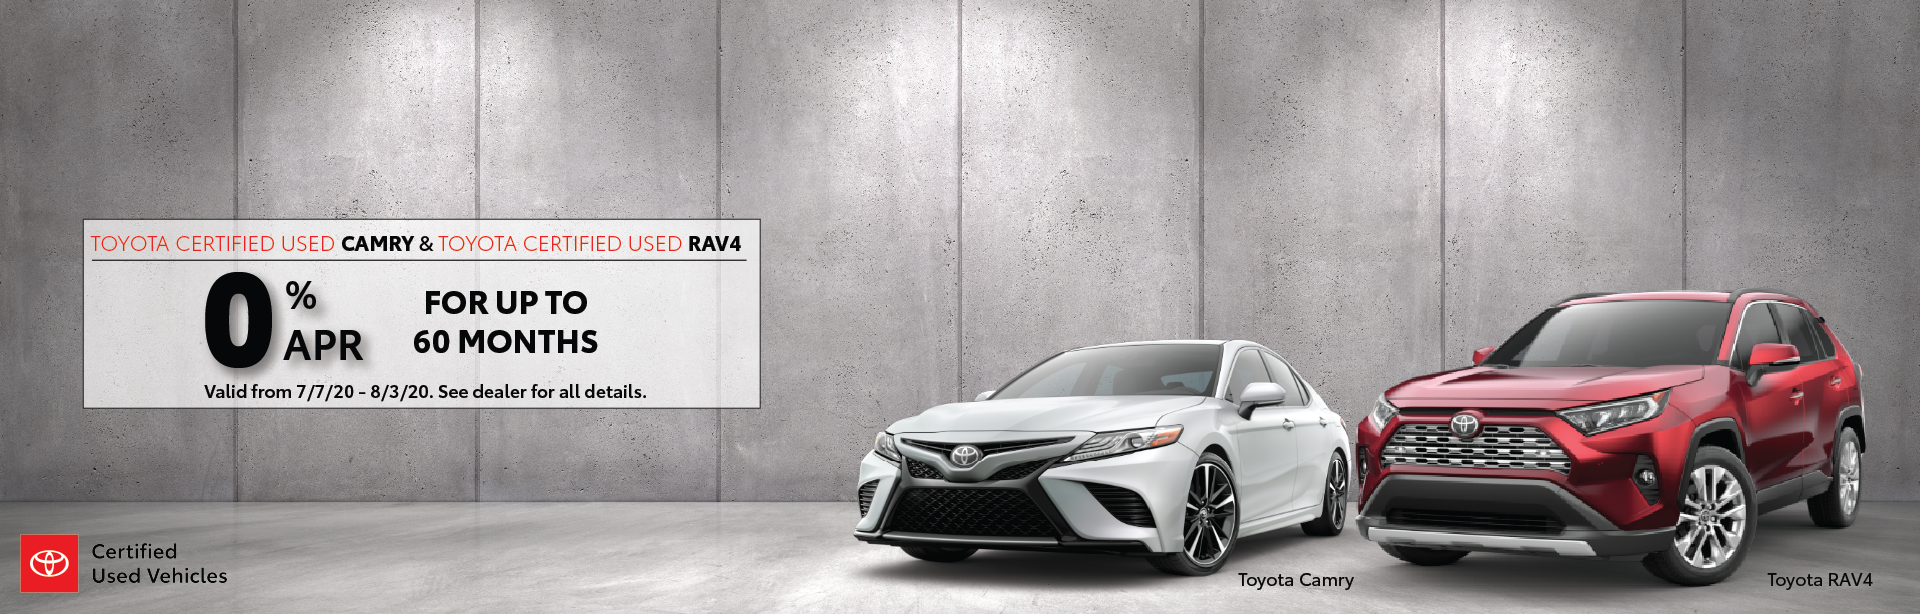 TCUV Camry and RAV4 Offer